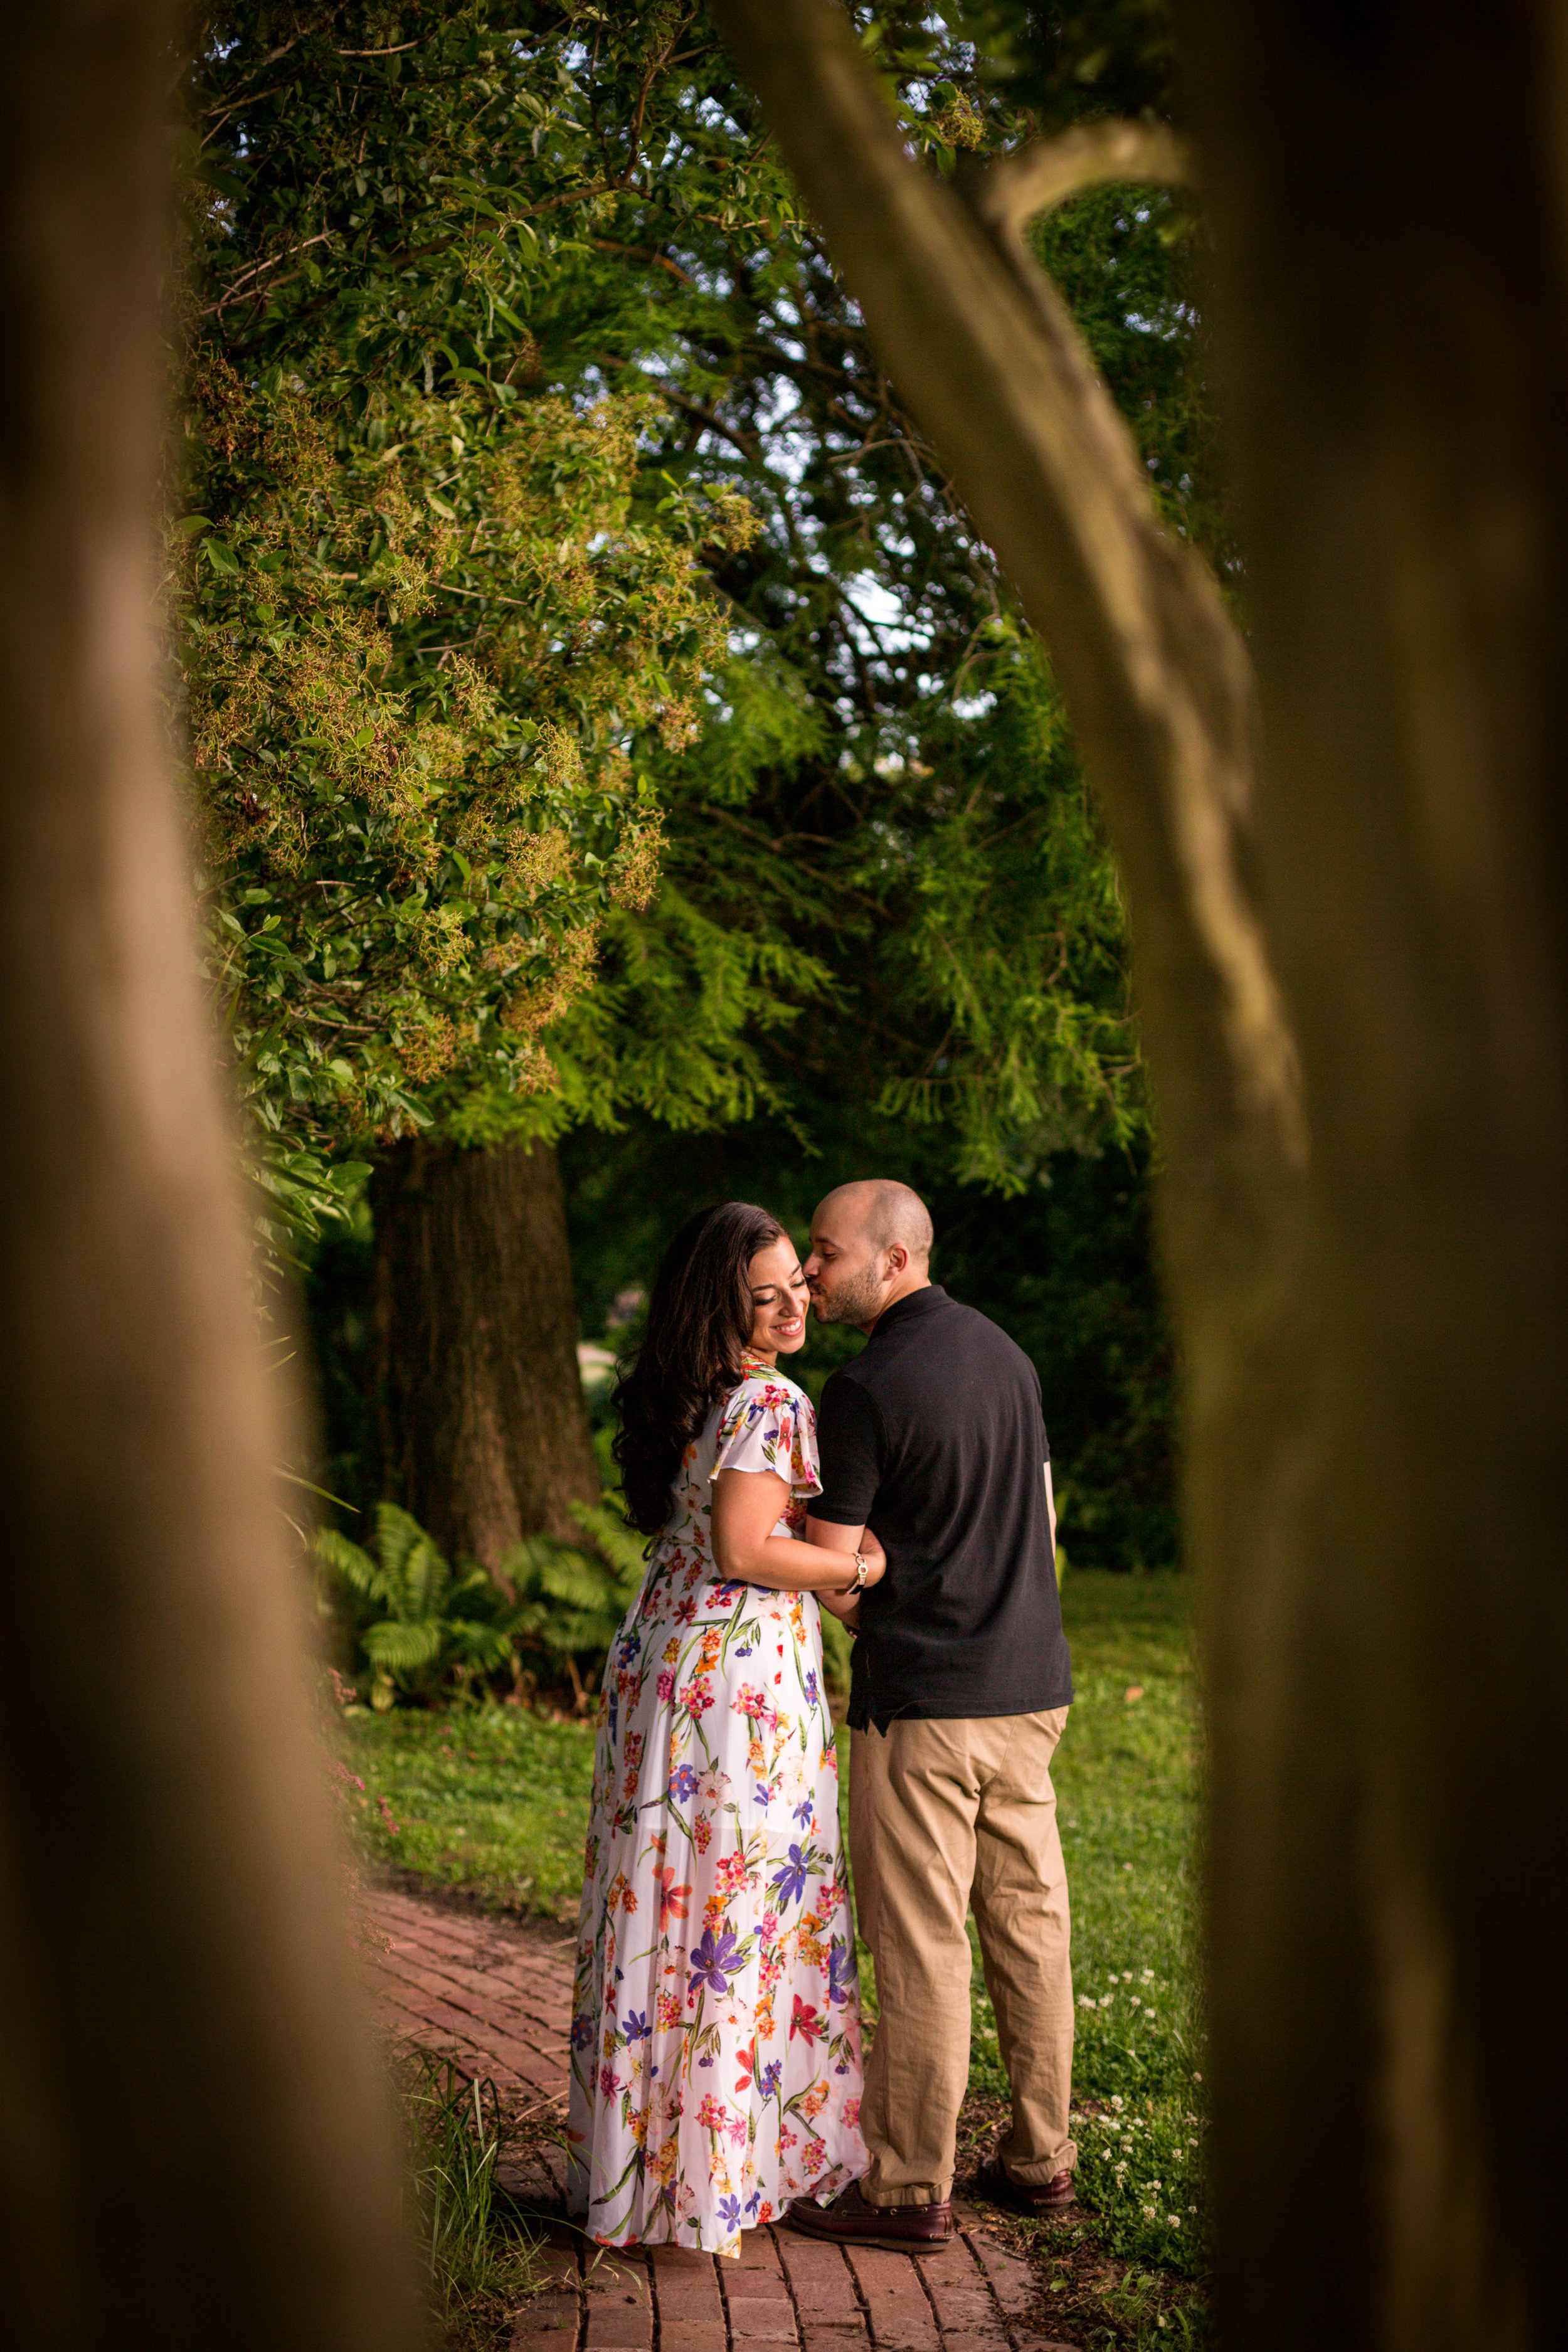 Engagement portrait taken on one of the many brick paths and gardens surrounding the mansion at Merry Sherwood in Berlin Md.